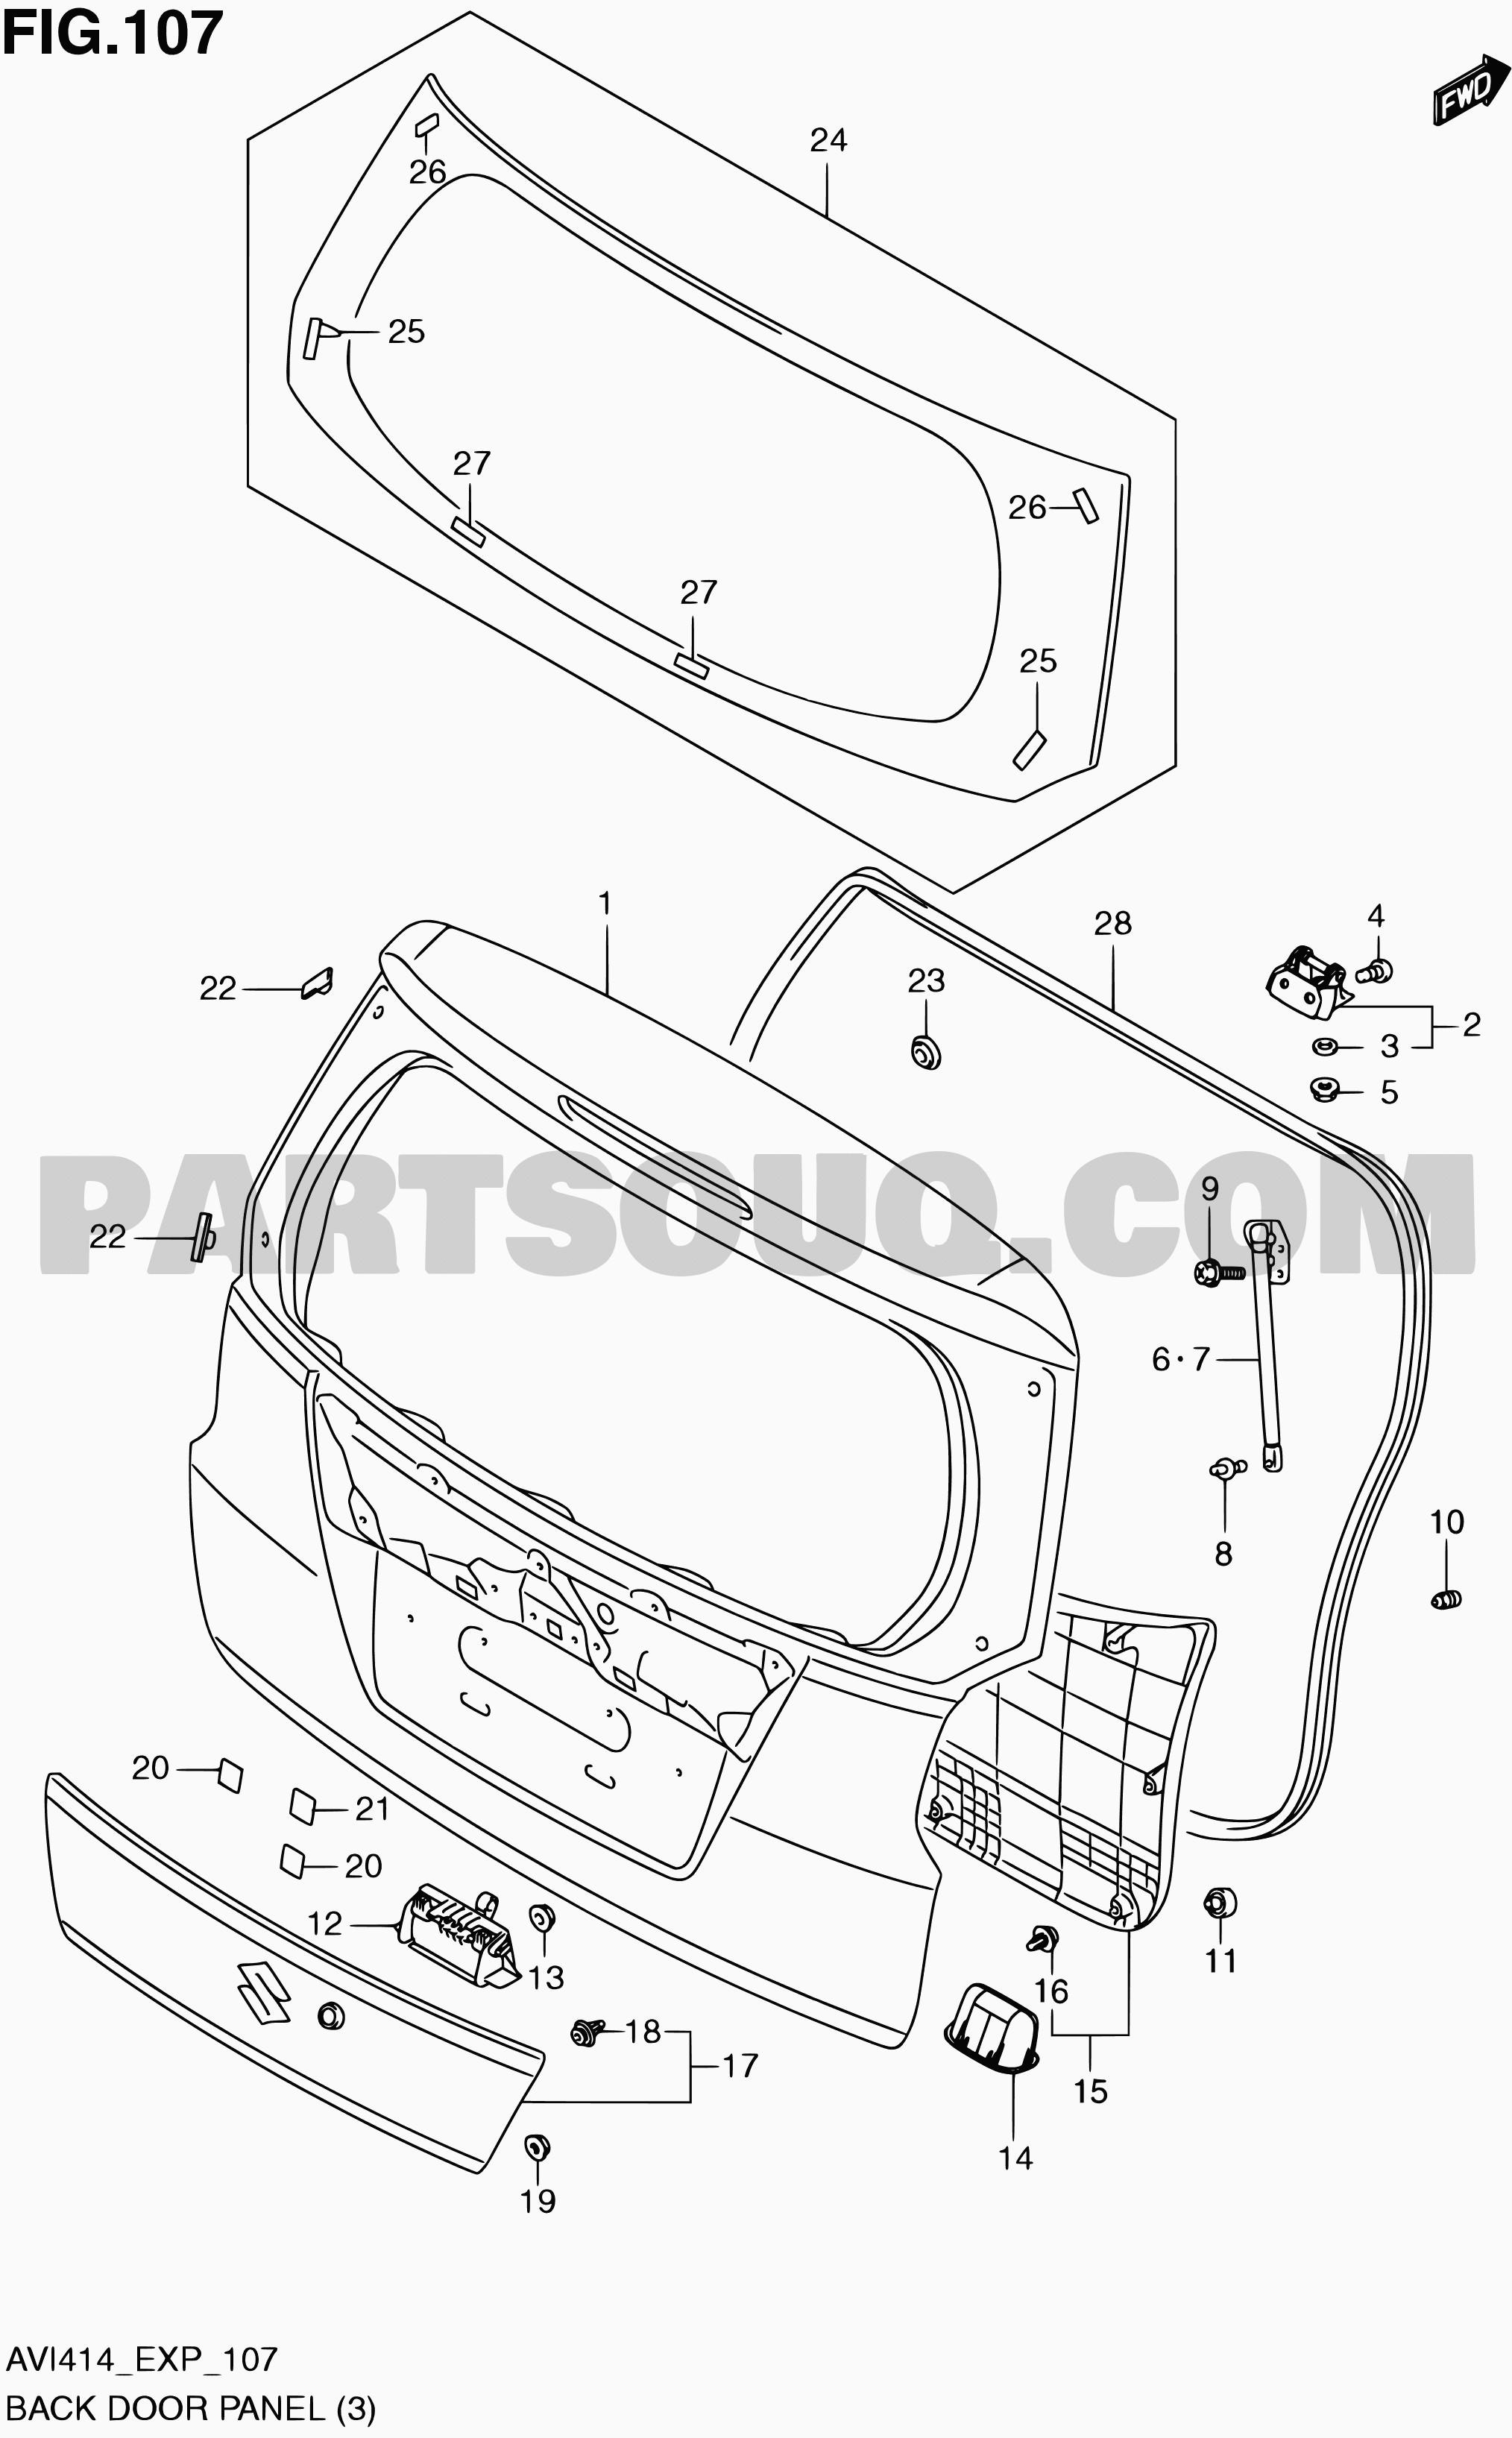 2007 Suzuki forenza Engine Diagram Suzuki Door Schematic Schematics Wiring Diagrams • Of 2007 Suzuki forenza Engine Diagram How to Tell if A Timing Belt Tensioner is Bad 6 Steps